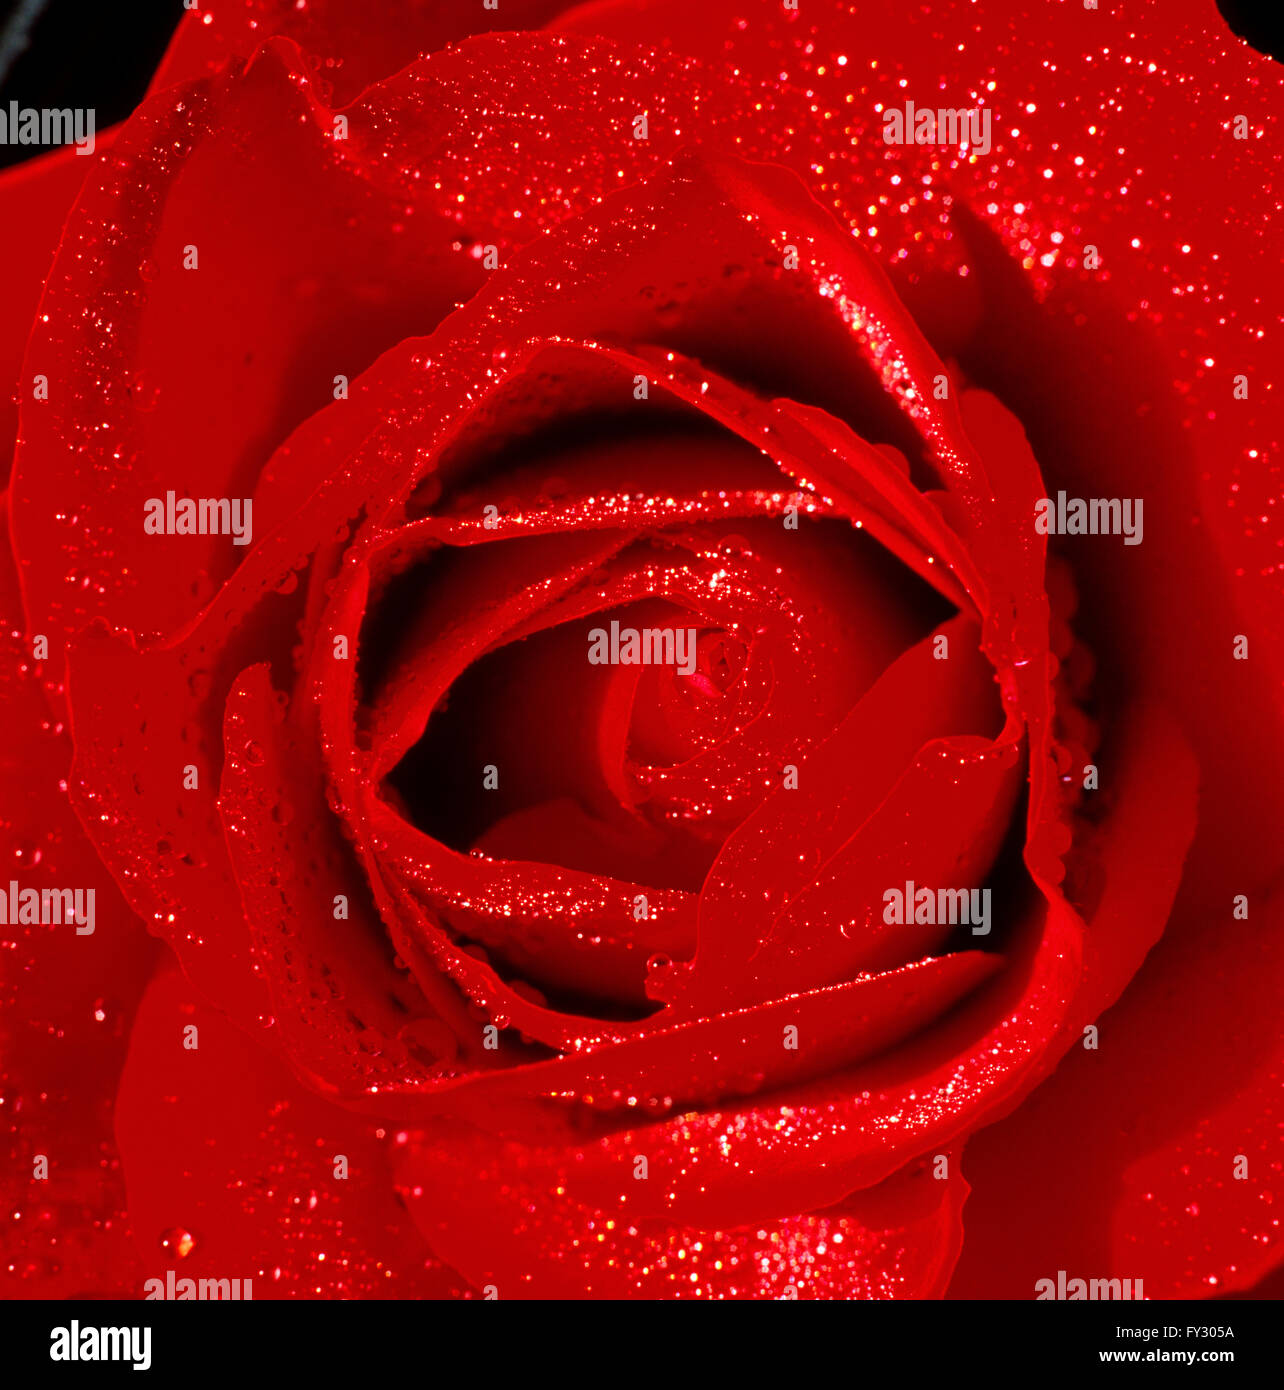 Close-up of a red rose with water droplets on its leafs. - Stock Image